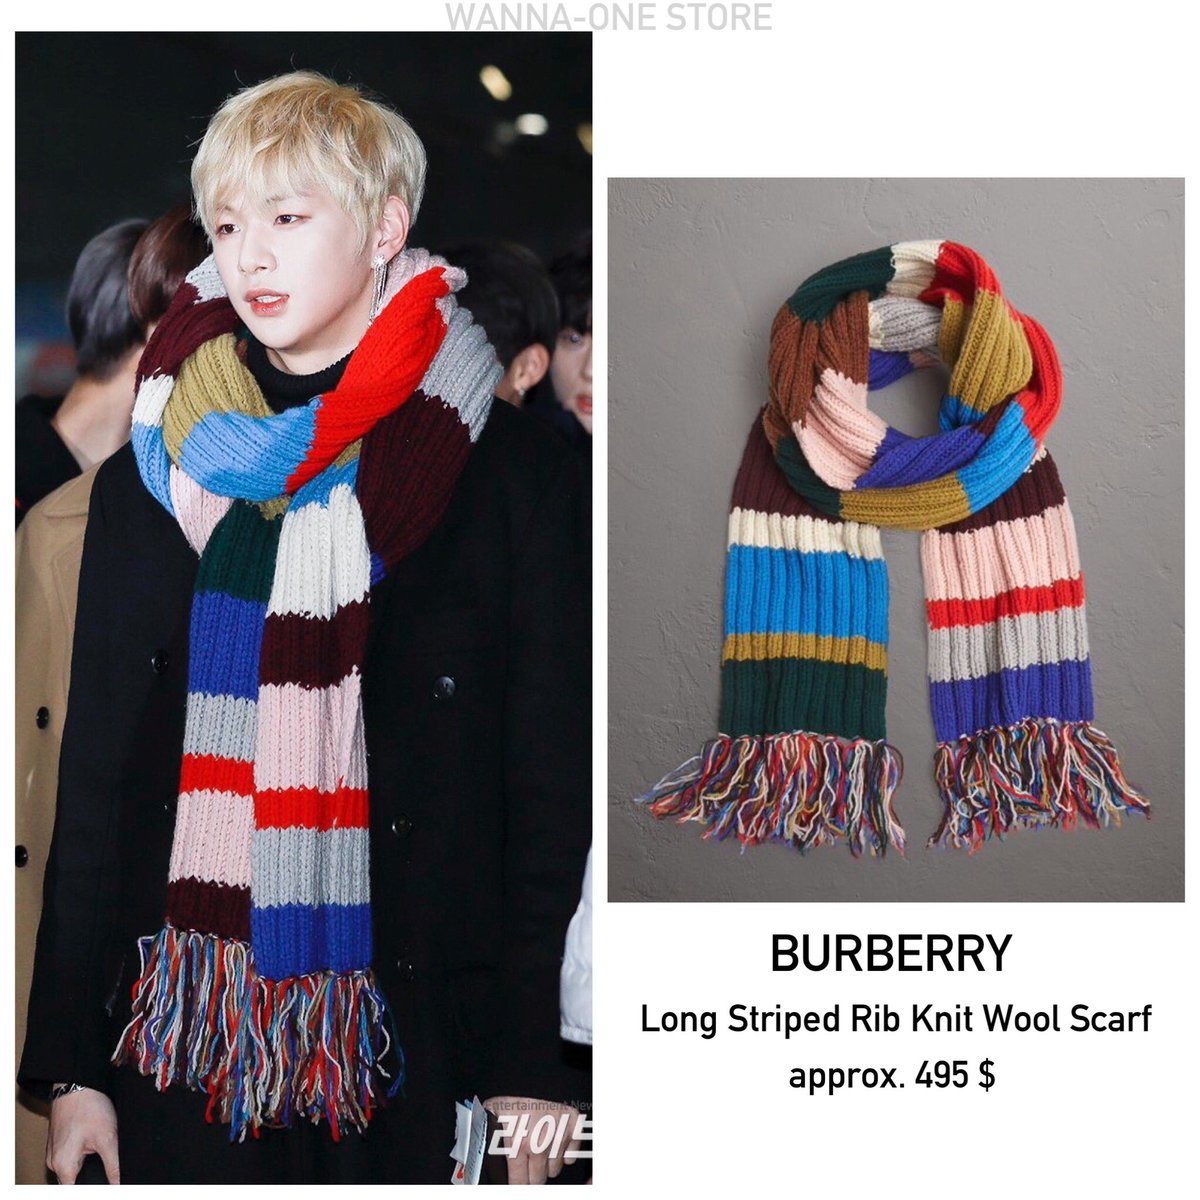 Low Price Burberry Scarf Love Sms 71594 265fe